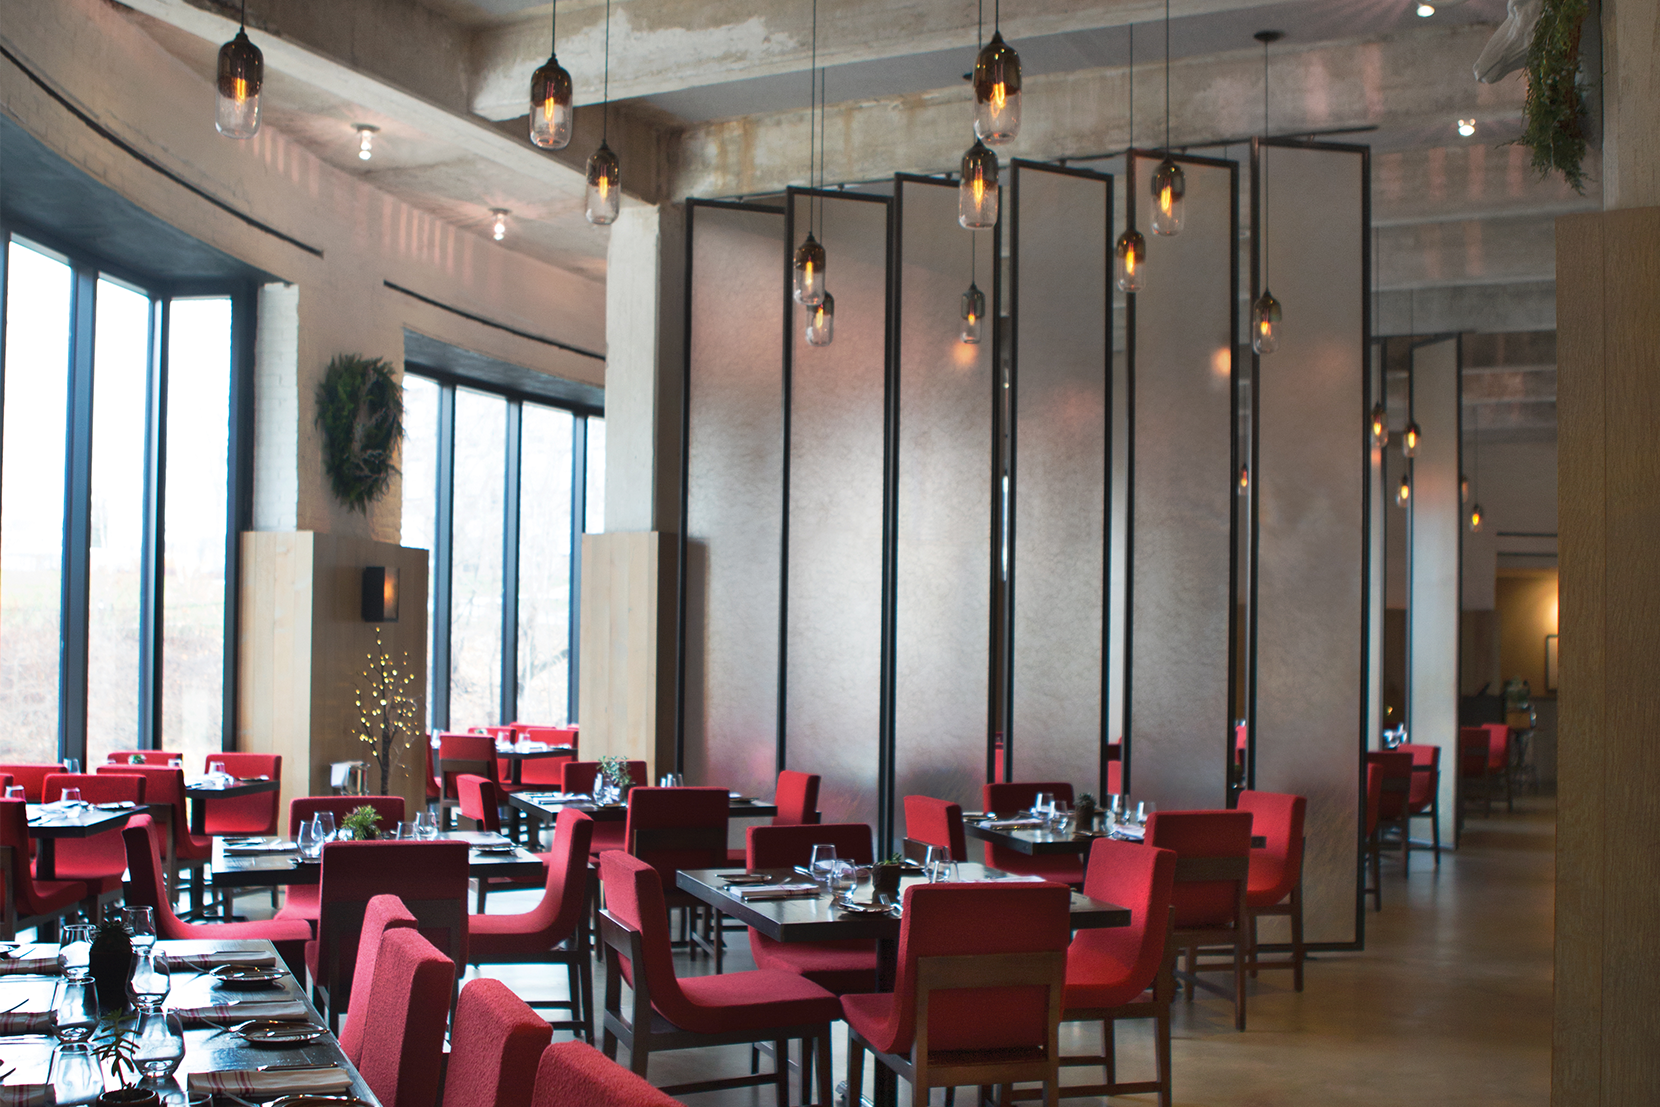 Lighting-Project-Pages_0009s_0002_Custom-Modern-Restaurant-Pendant-Lighting.png